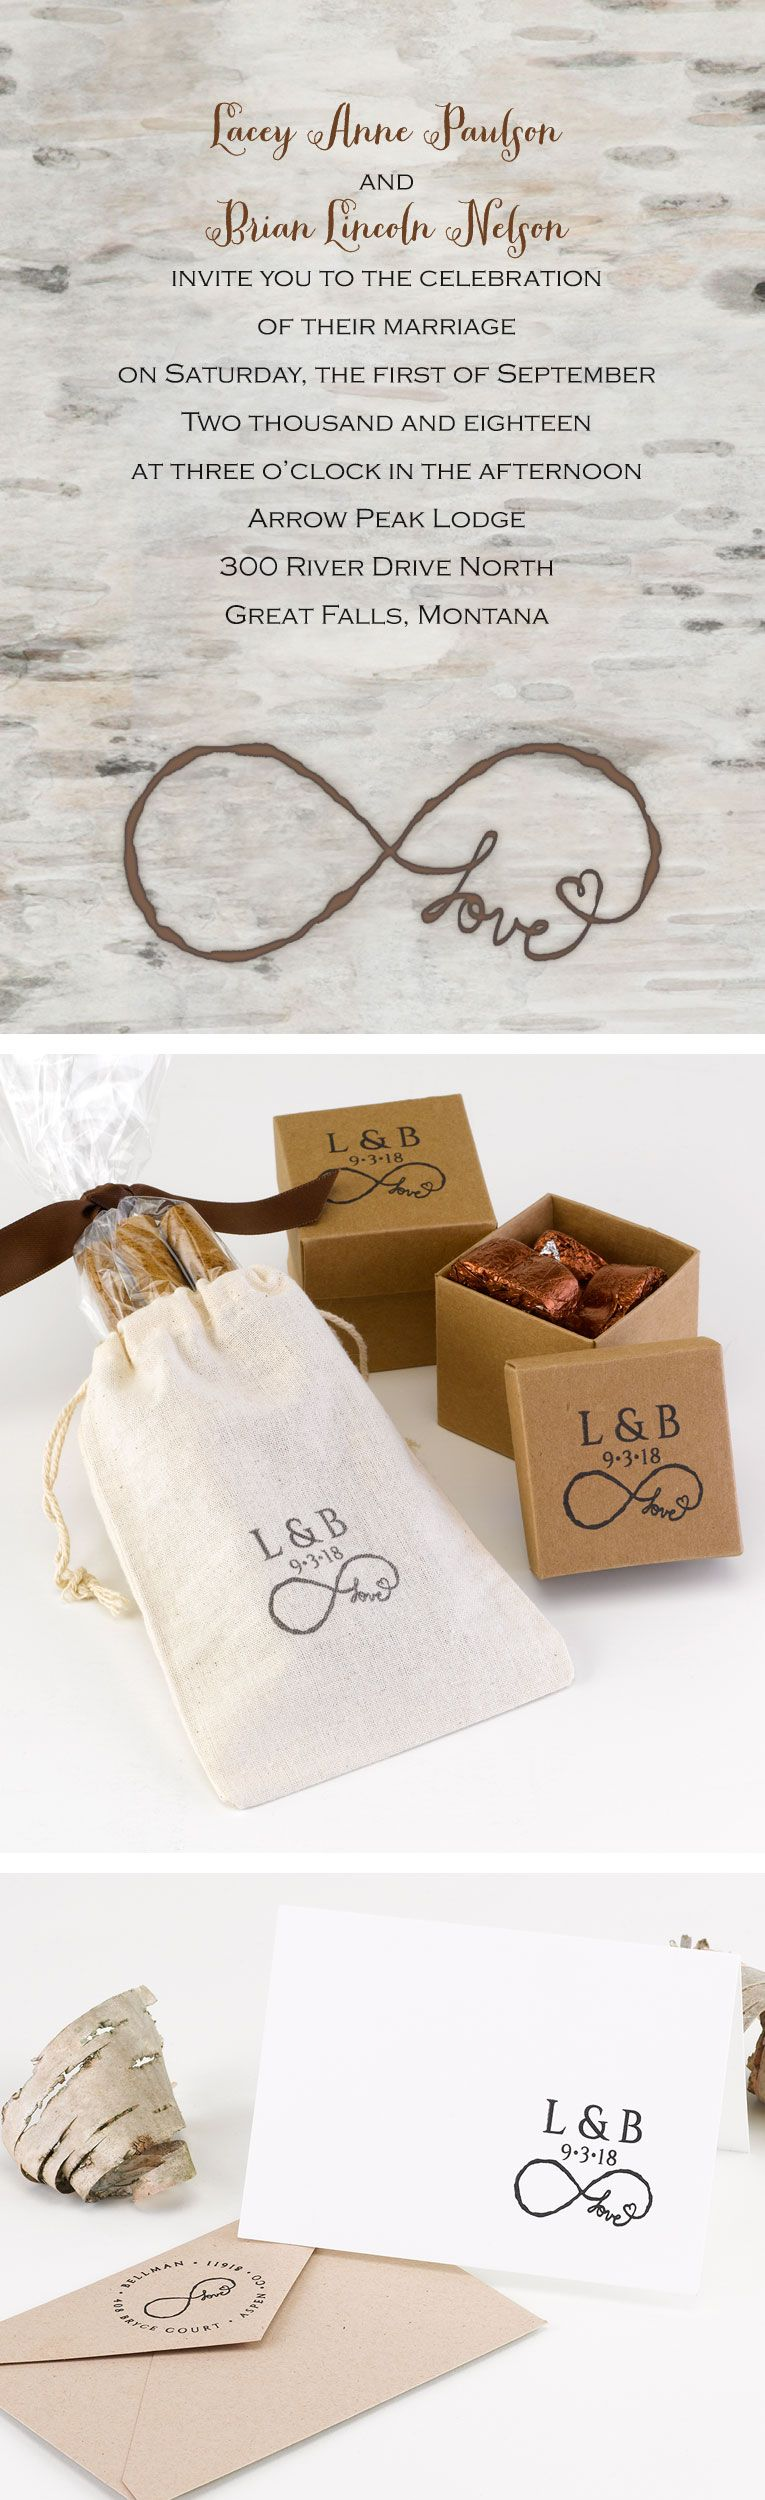 Custom Stamps to Match Your Wedding Invitations | Themed weddings ...